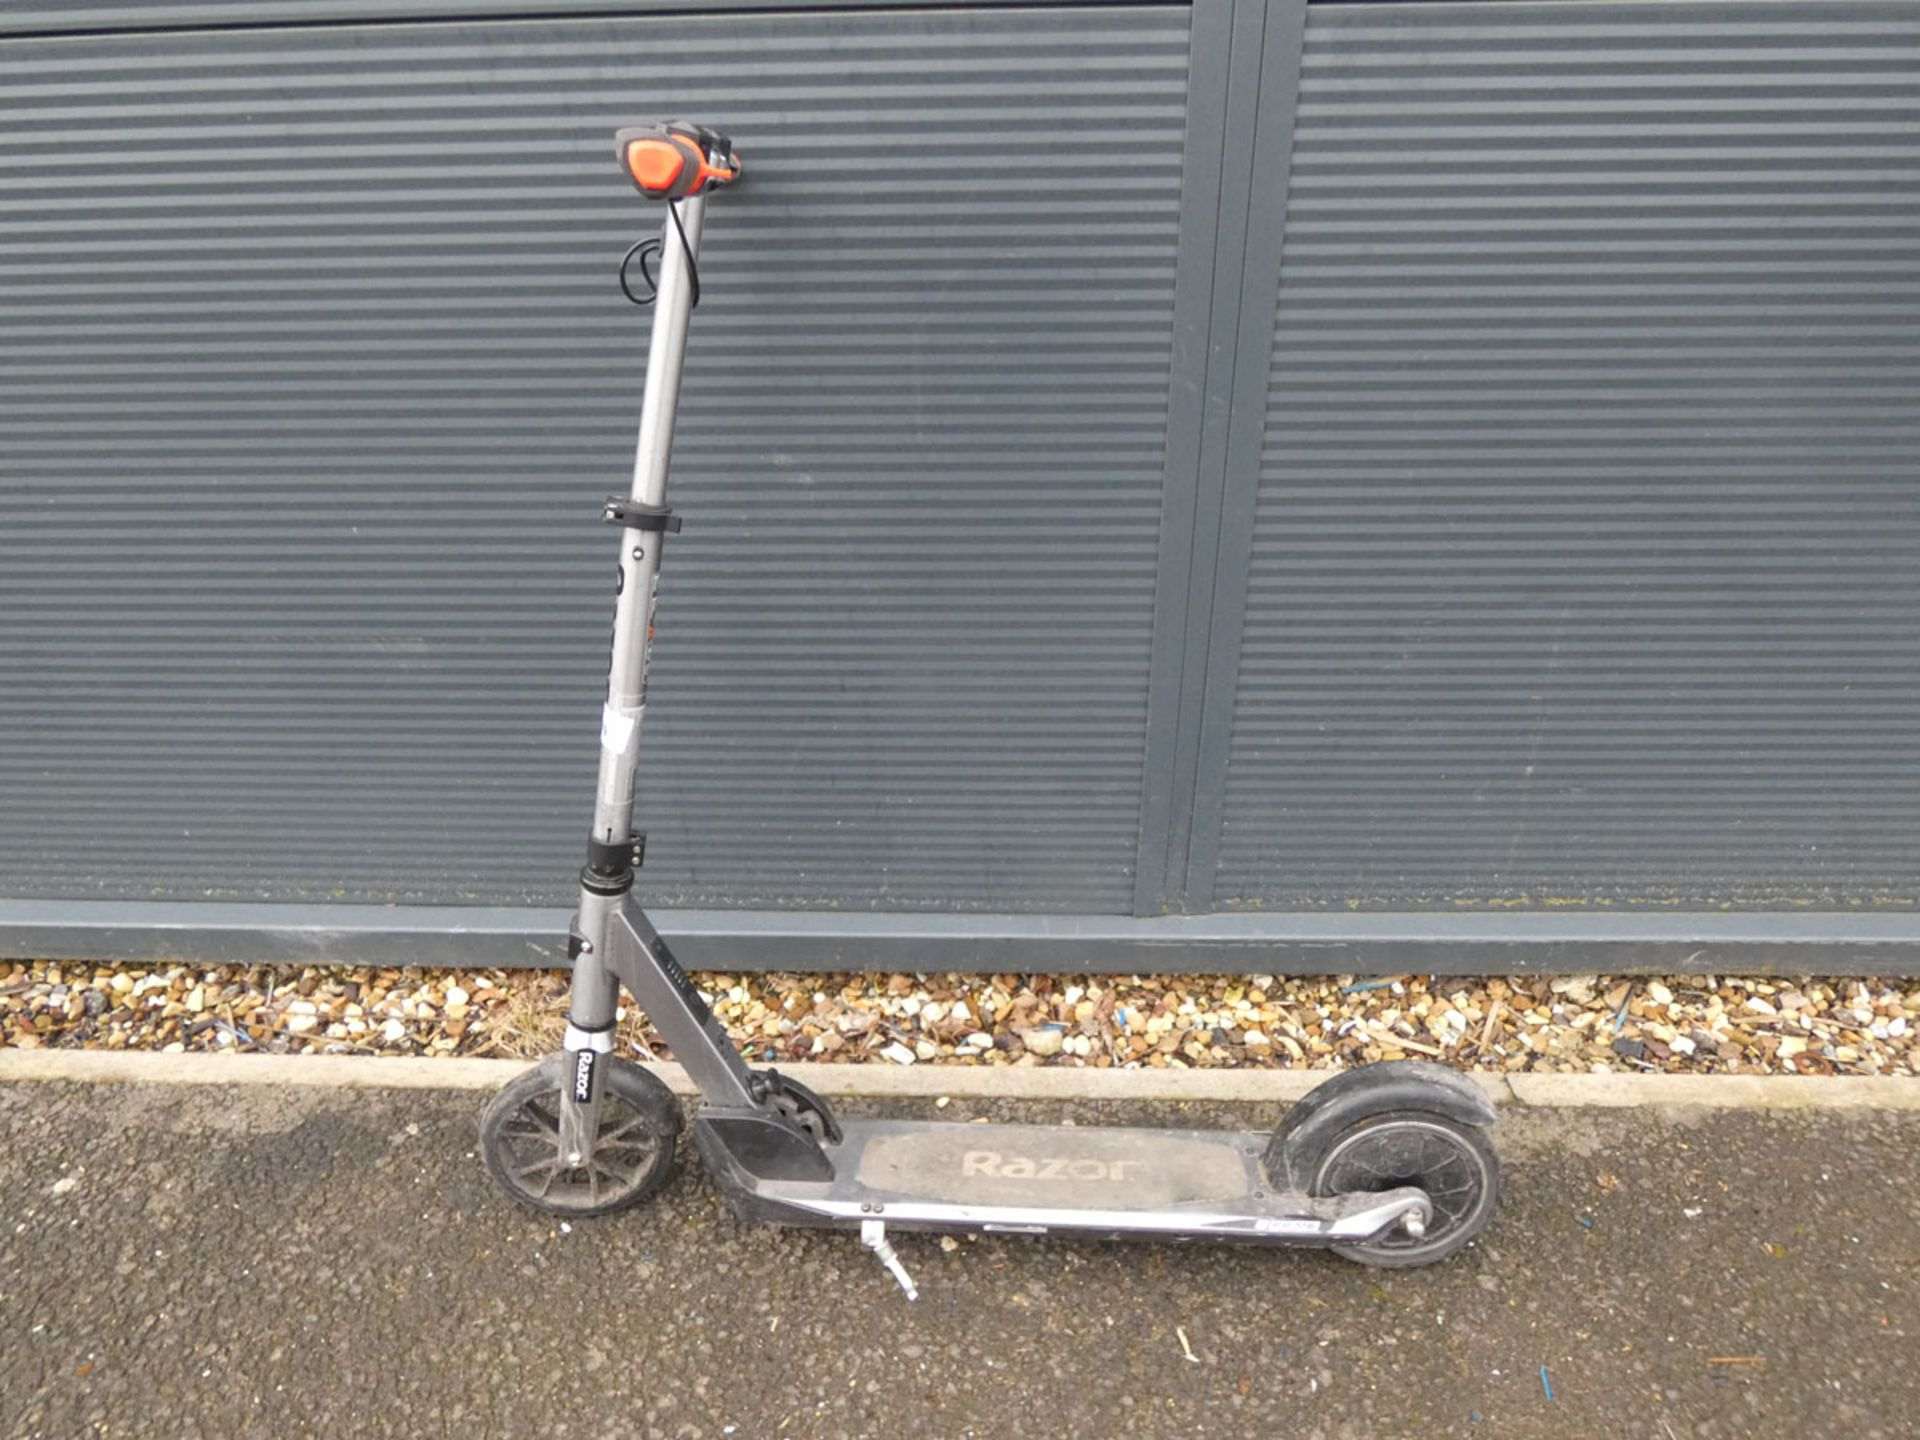 Razor electric scooter (no charger)